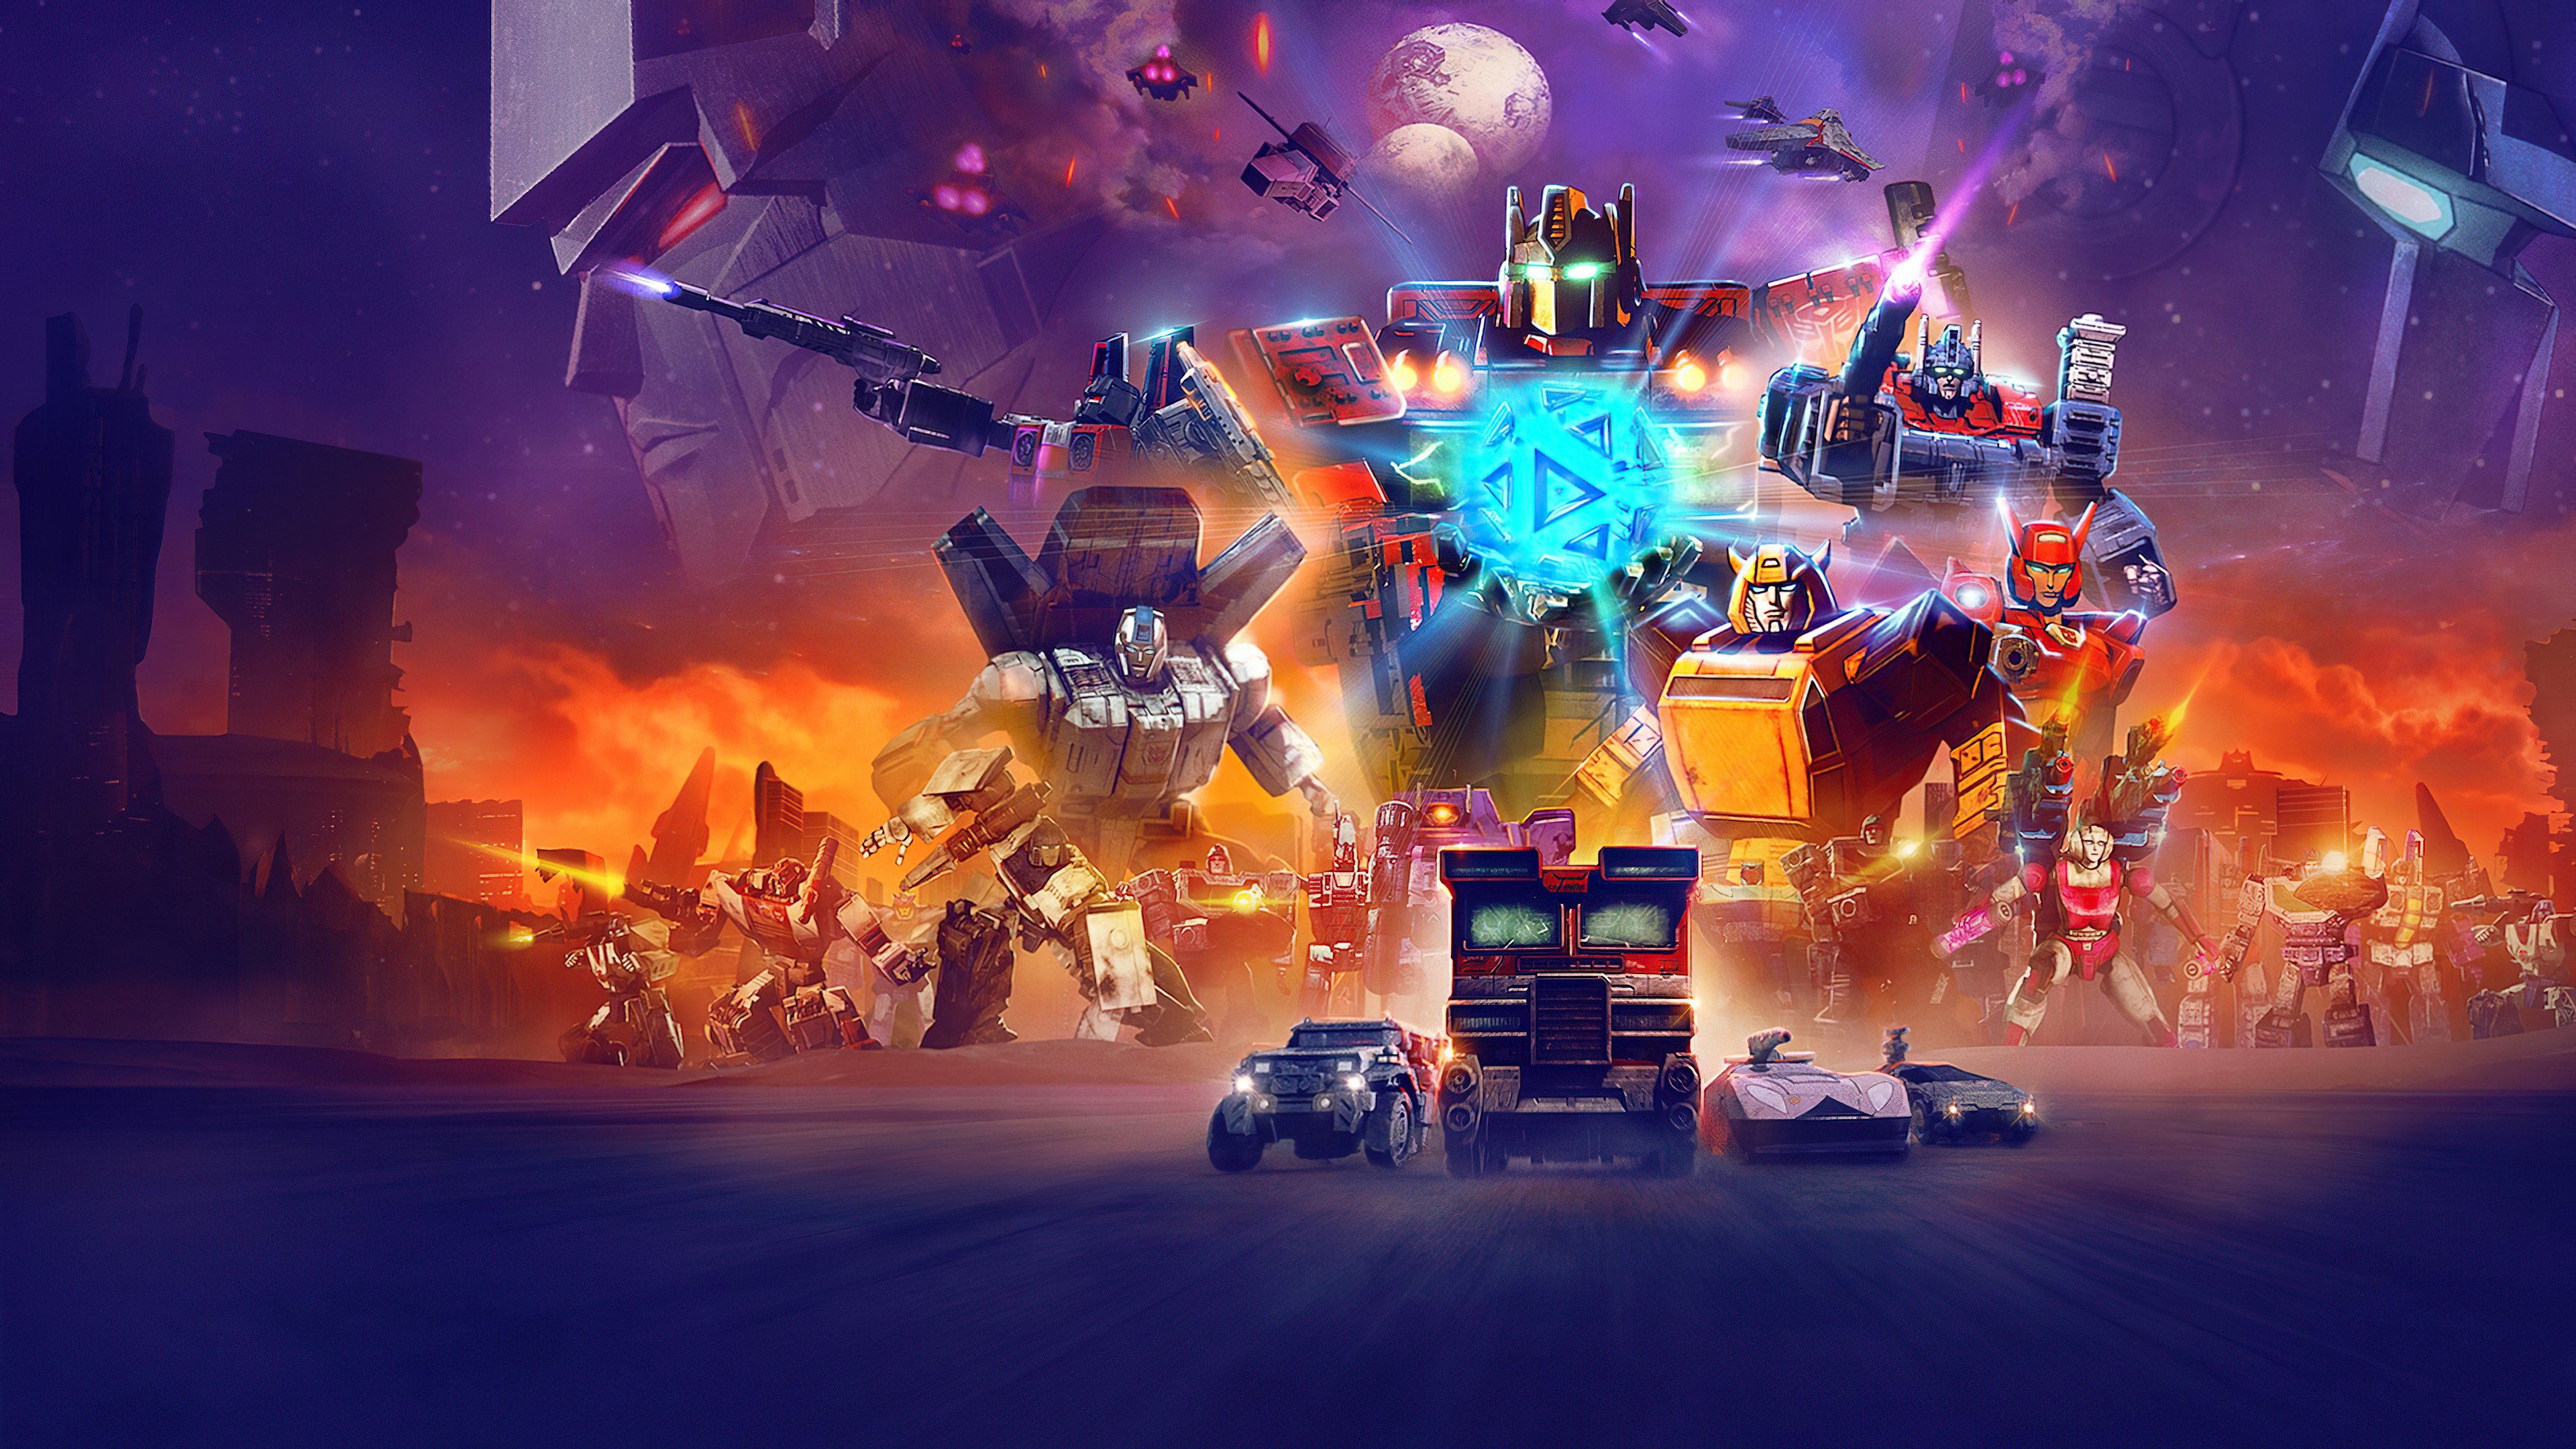 transformers war for cybertron 4k 1615199896 - Transformers War For Cybertron 4k - Transformers War For Cybertron 4k wallpapers